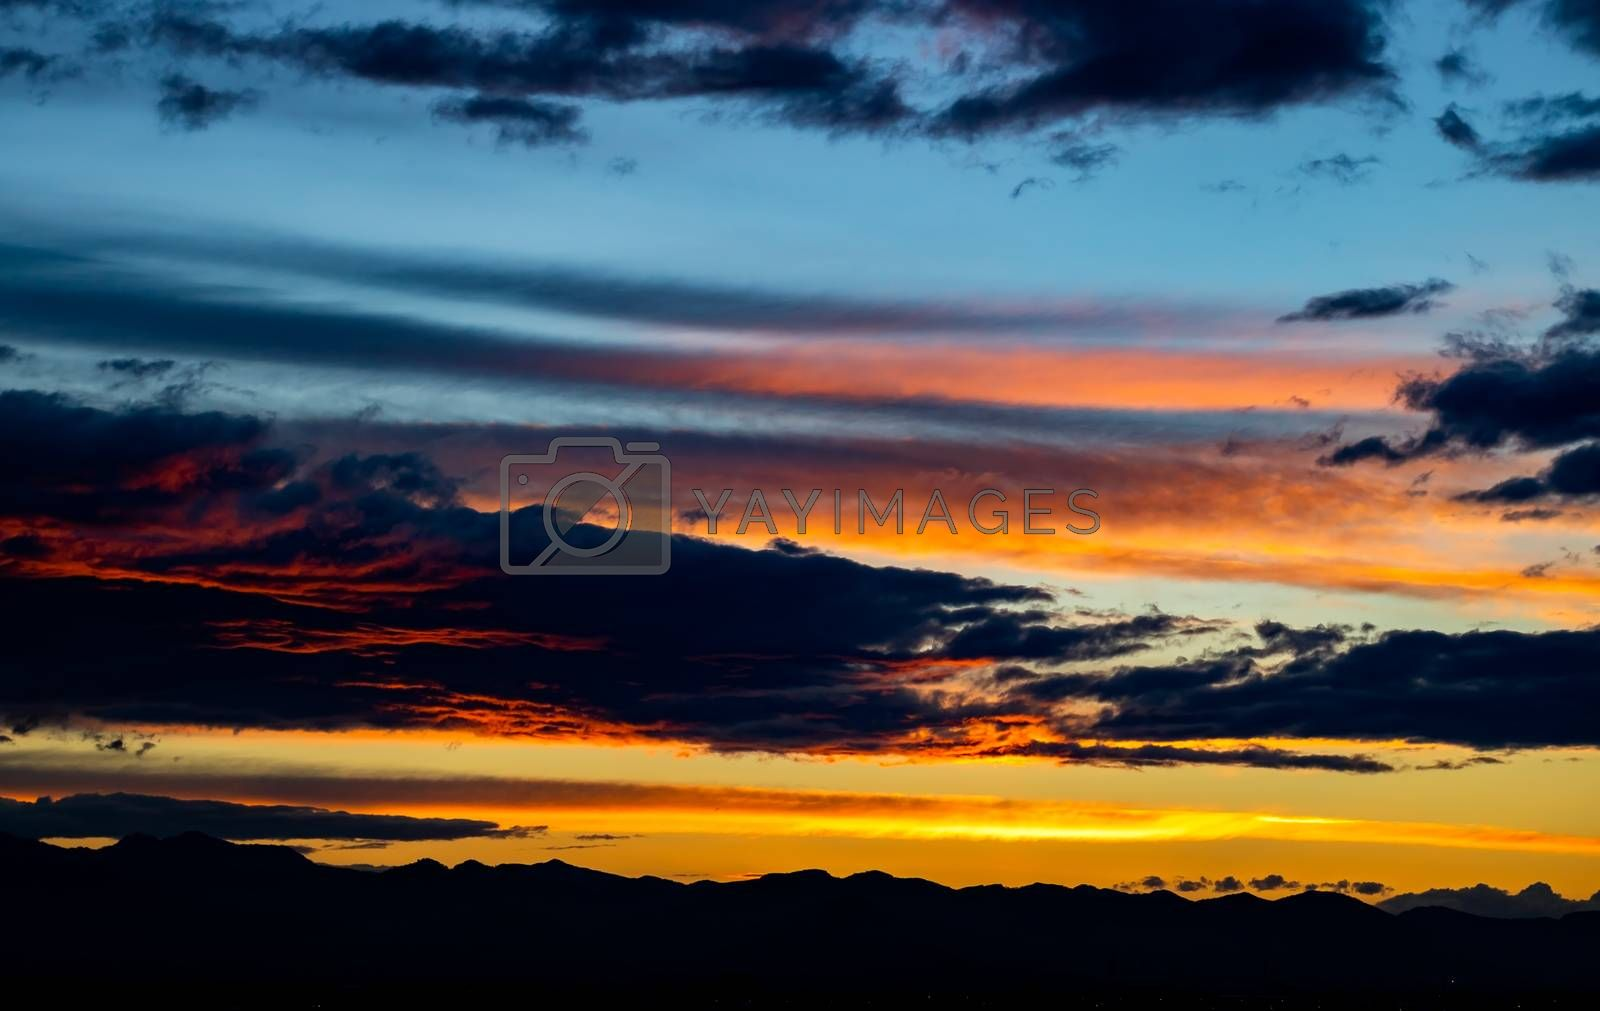 Sunset over mountains by Barriolo82